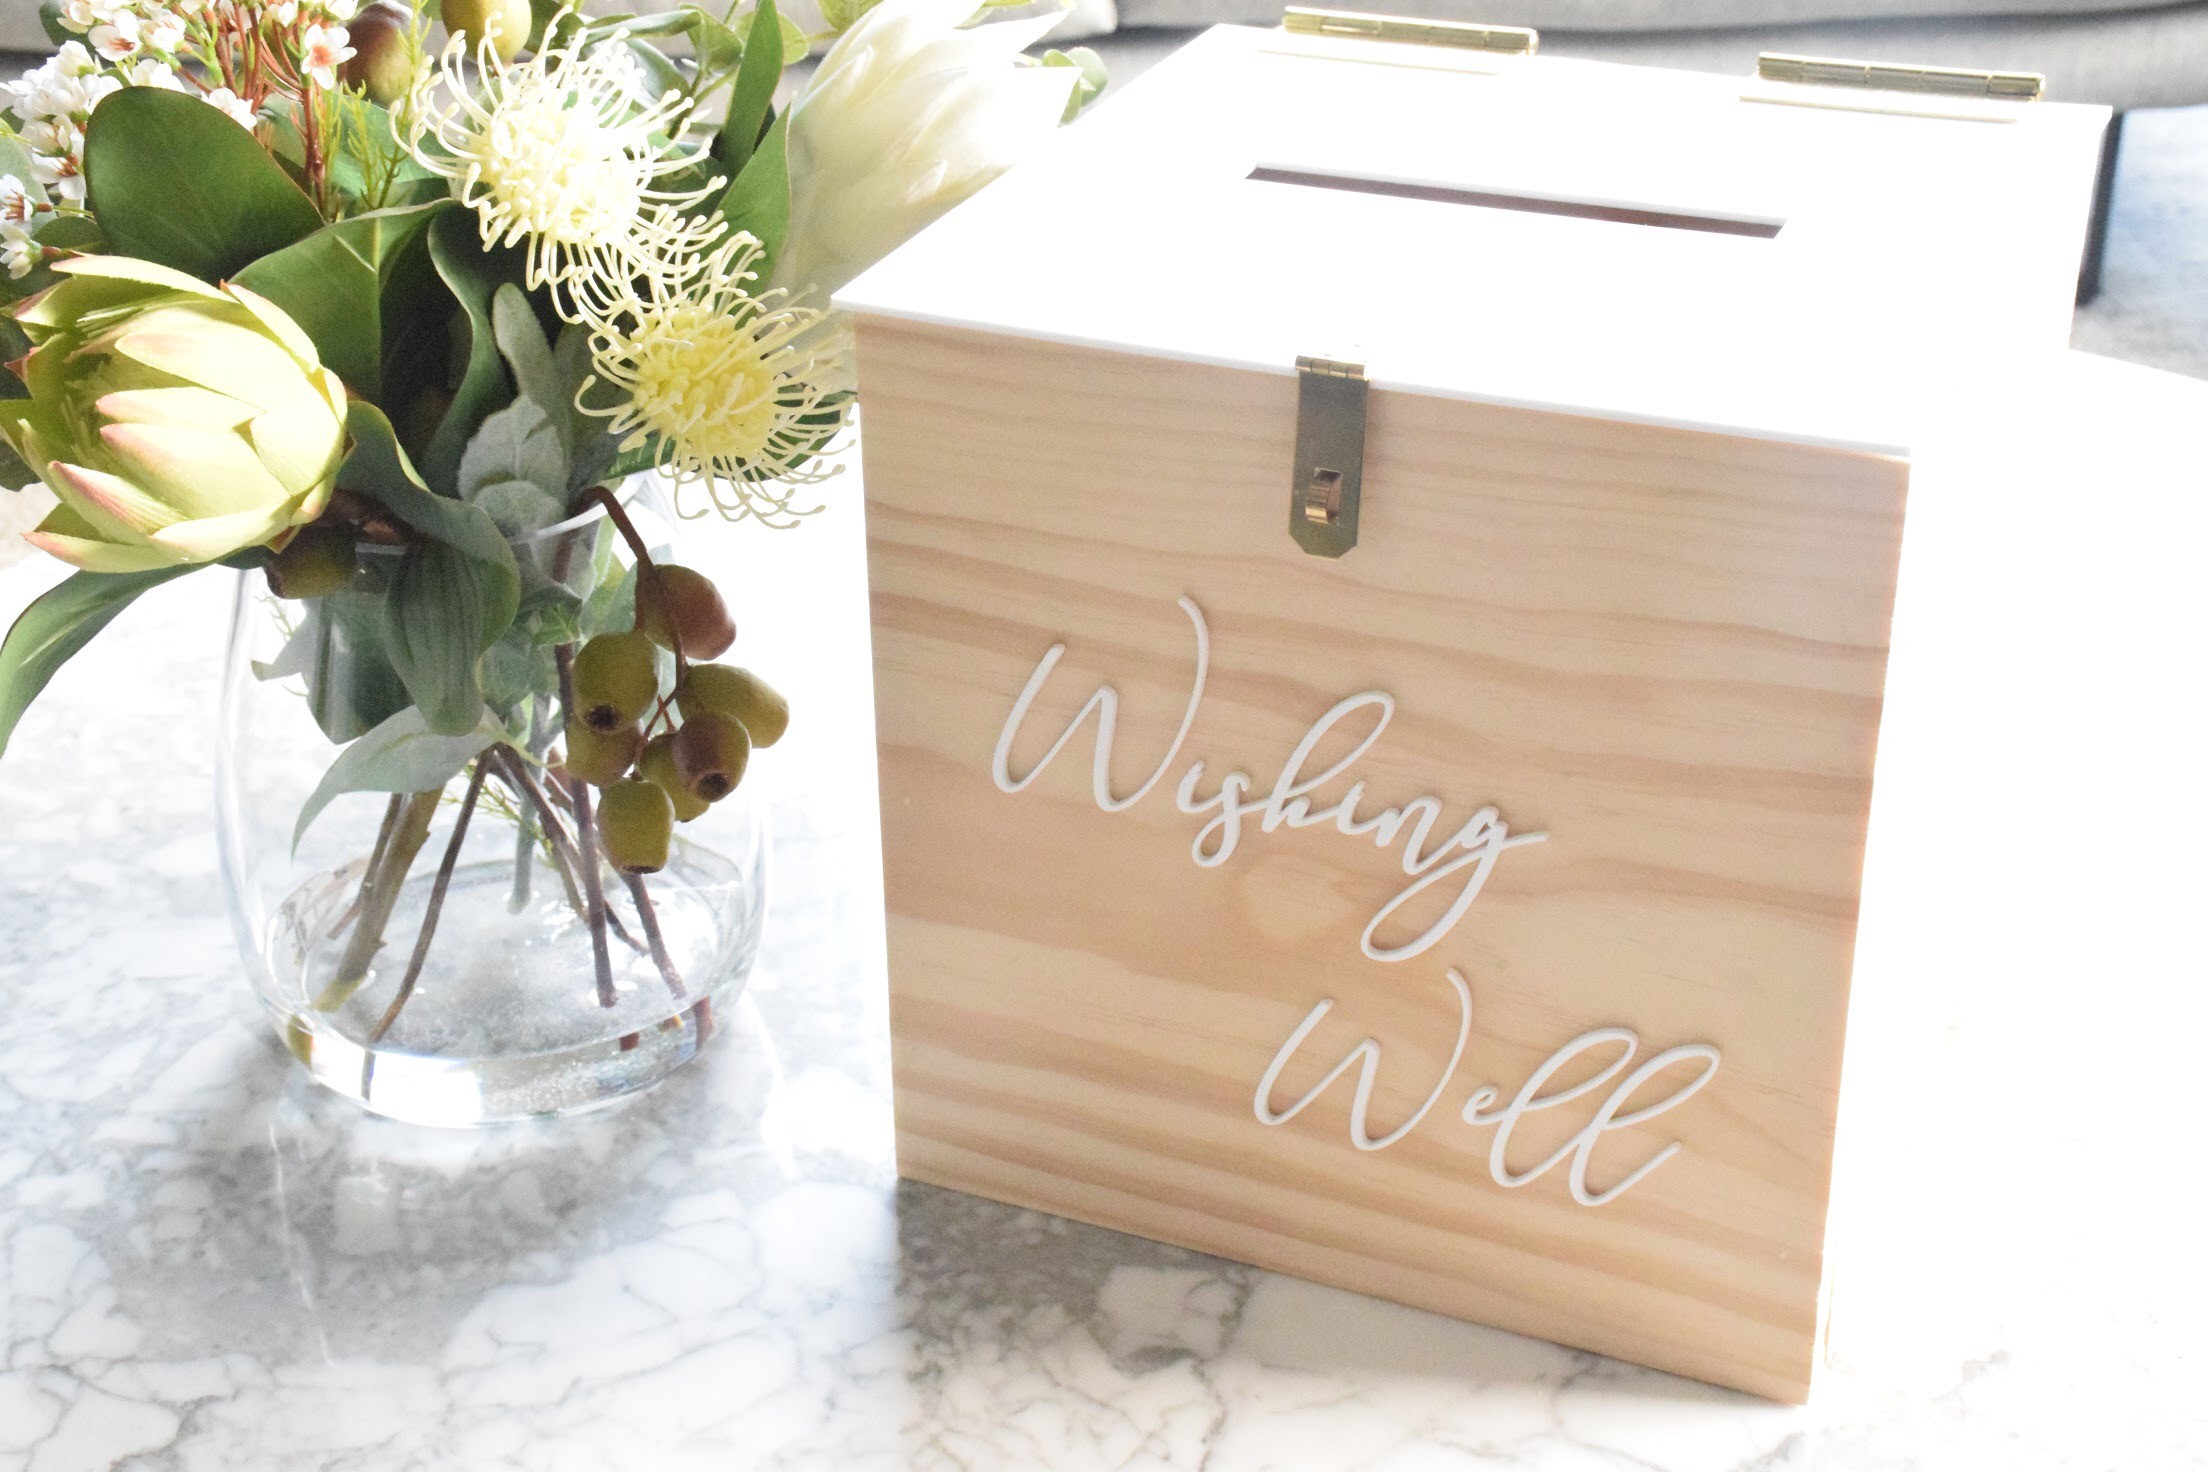 WISHING WELL BOX WITH LOCK. PLEASE CONTACT ME VIA FACEBOOK BUSINESS PAGE OR EMAIL FOR BOOKINGS. (LOCAL WANGARATTA AREA ONLY)